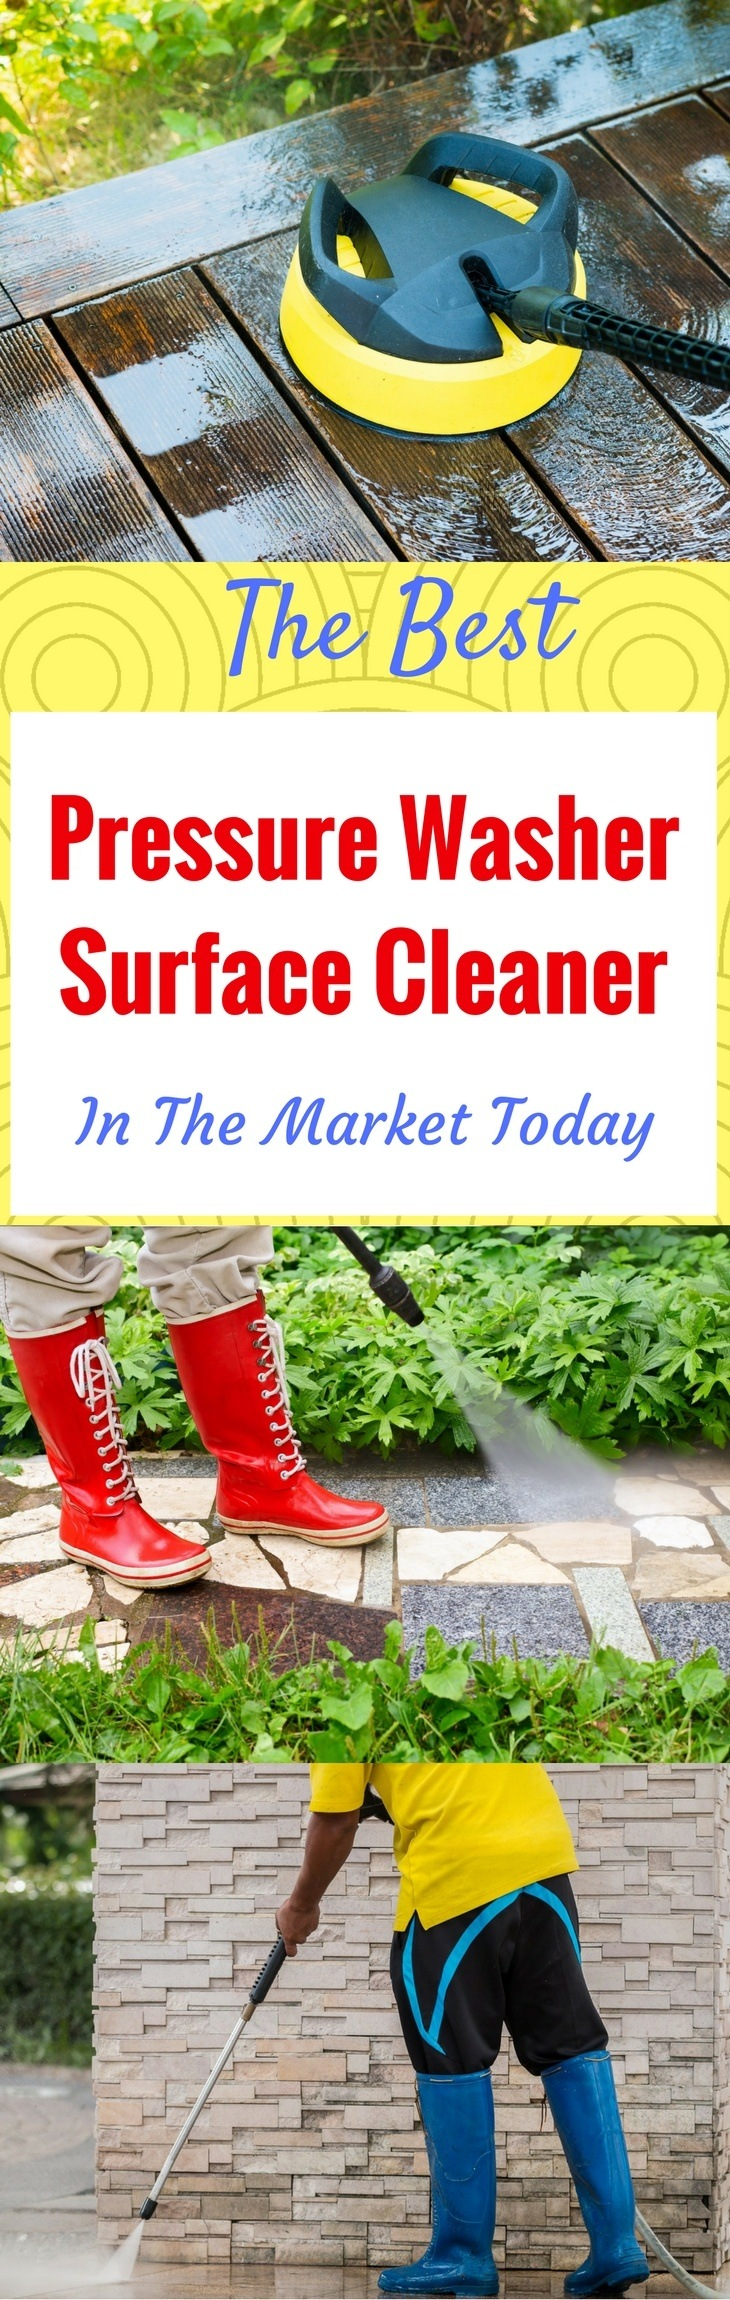 The Best Pressure Washer Surface Cleaner In The Market Today